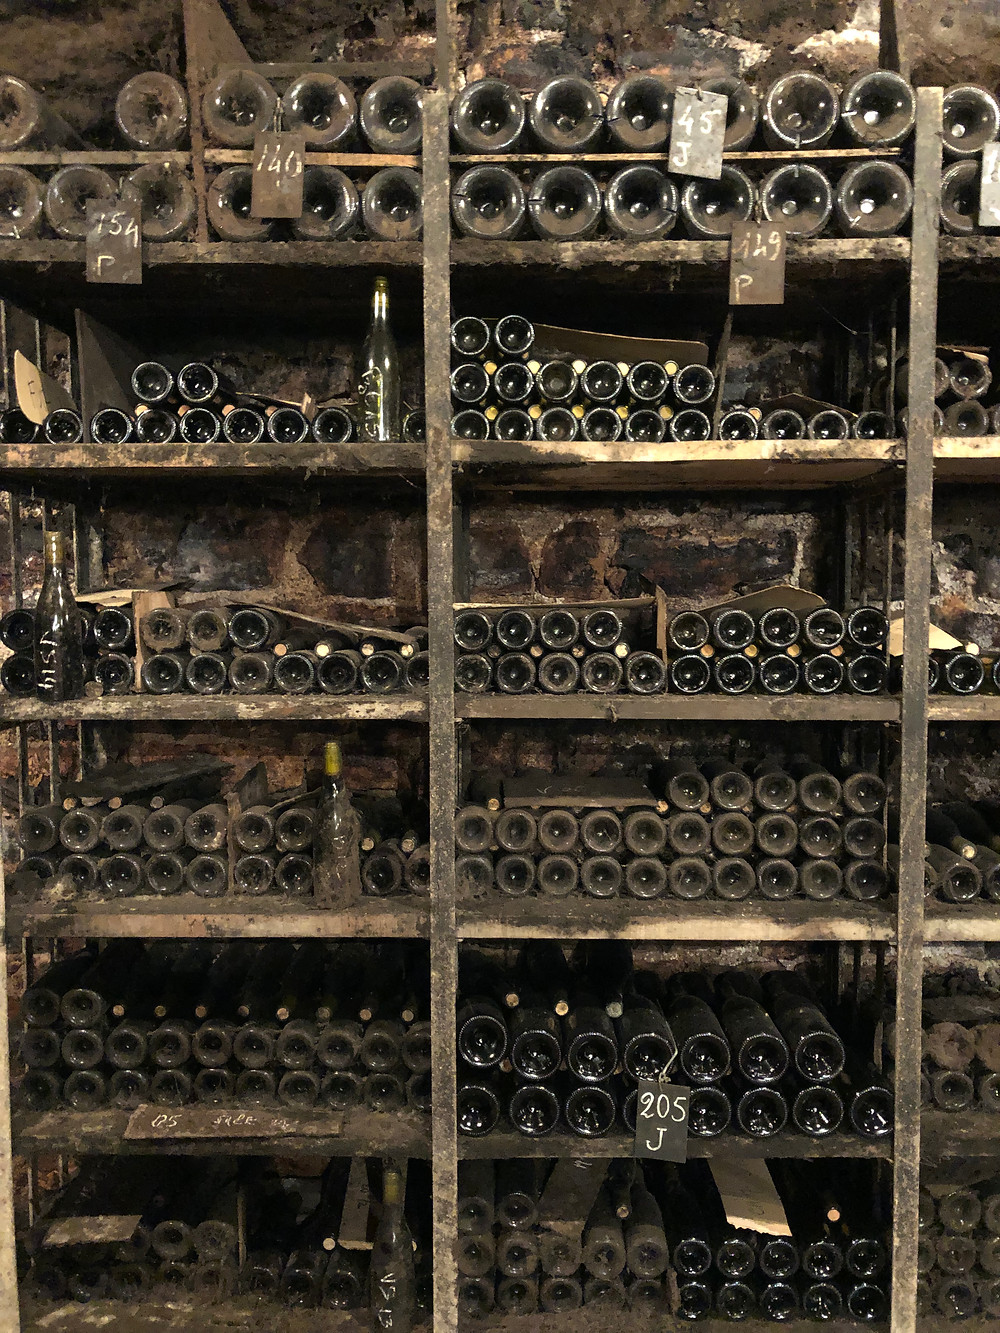 Old wine bottles in Meursault at the underground cellar of Jean Marie Bouzereau spotted during a winery visit and tasting during my Burgundy wine study trip